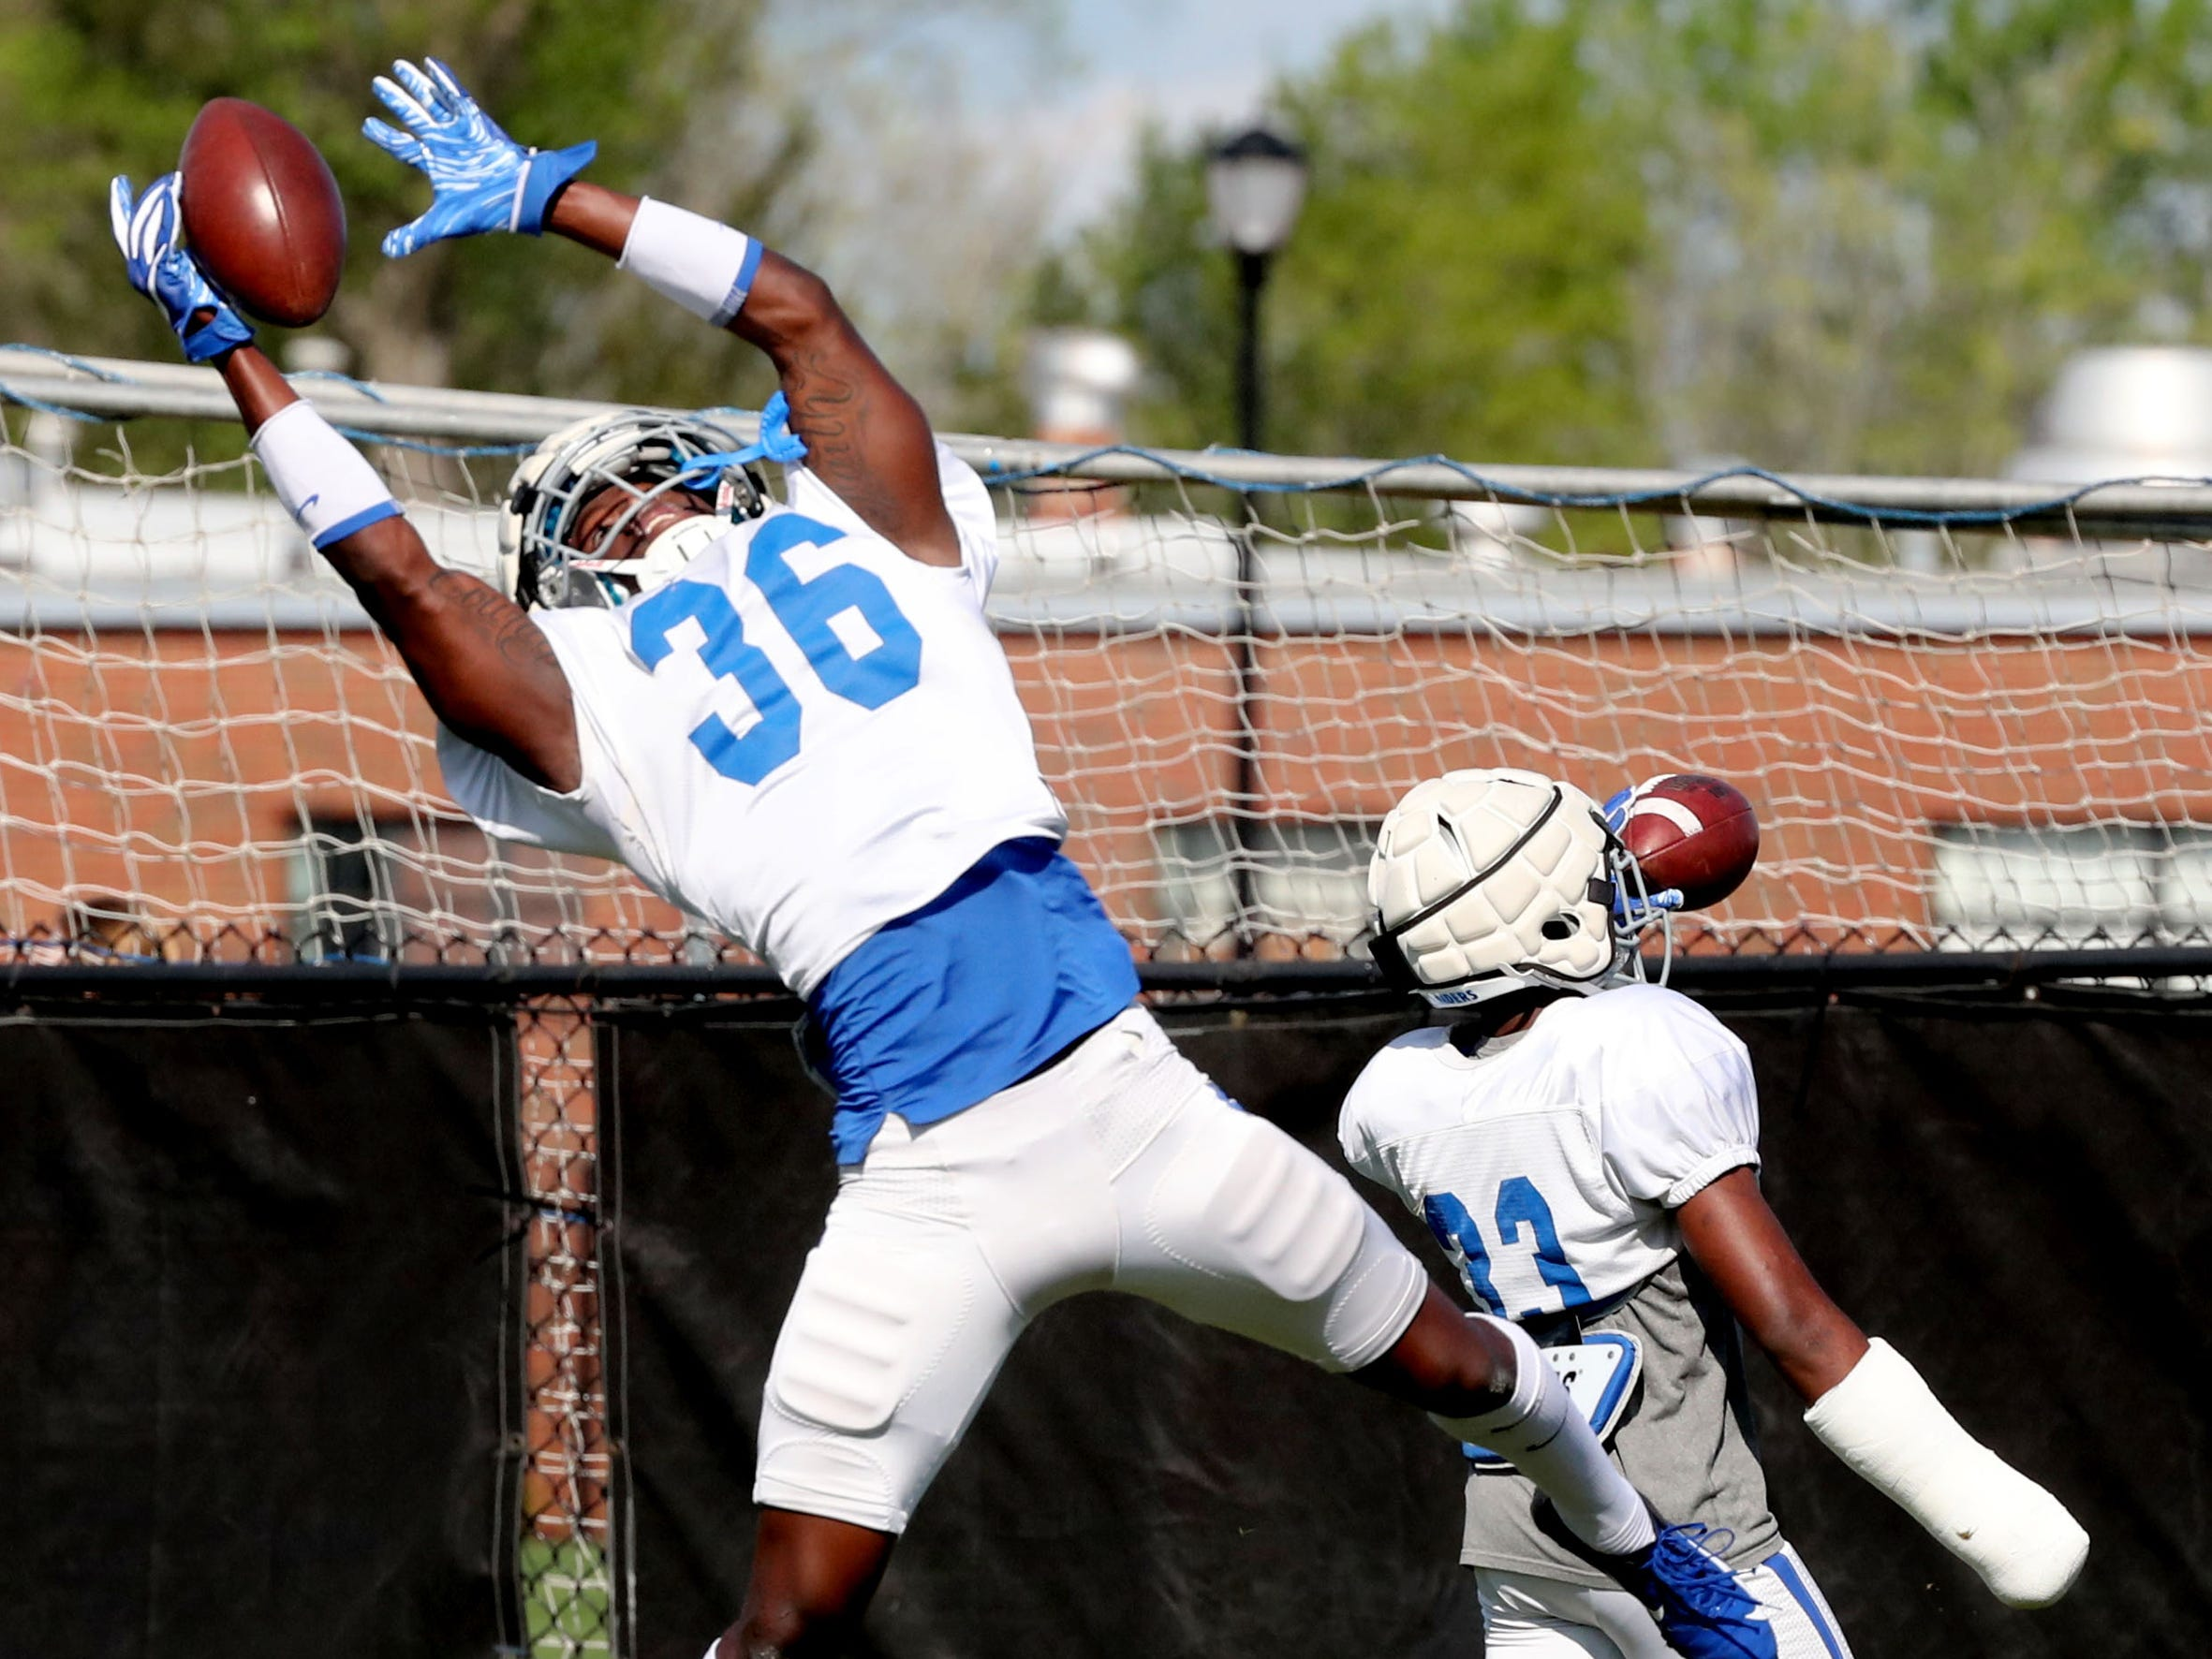 MTSU's defensive back Kamau Farrell-Burke (36) grabs the ball during a drill at MTSU's football practice, in Murfreesboro on Tuesday April 9, 2019.